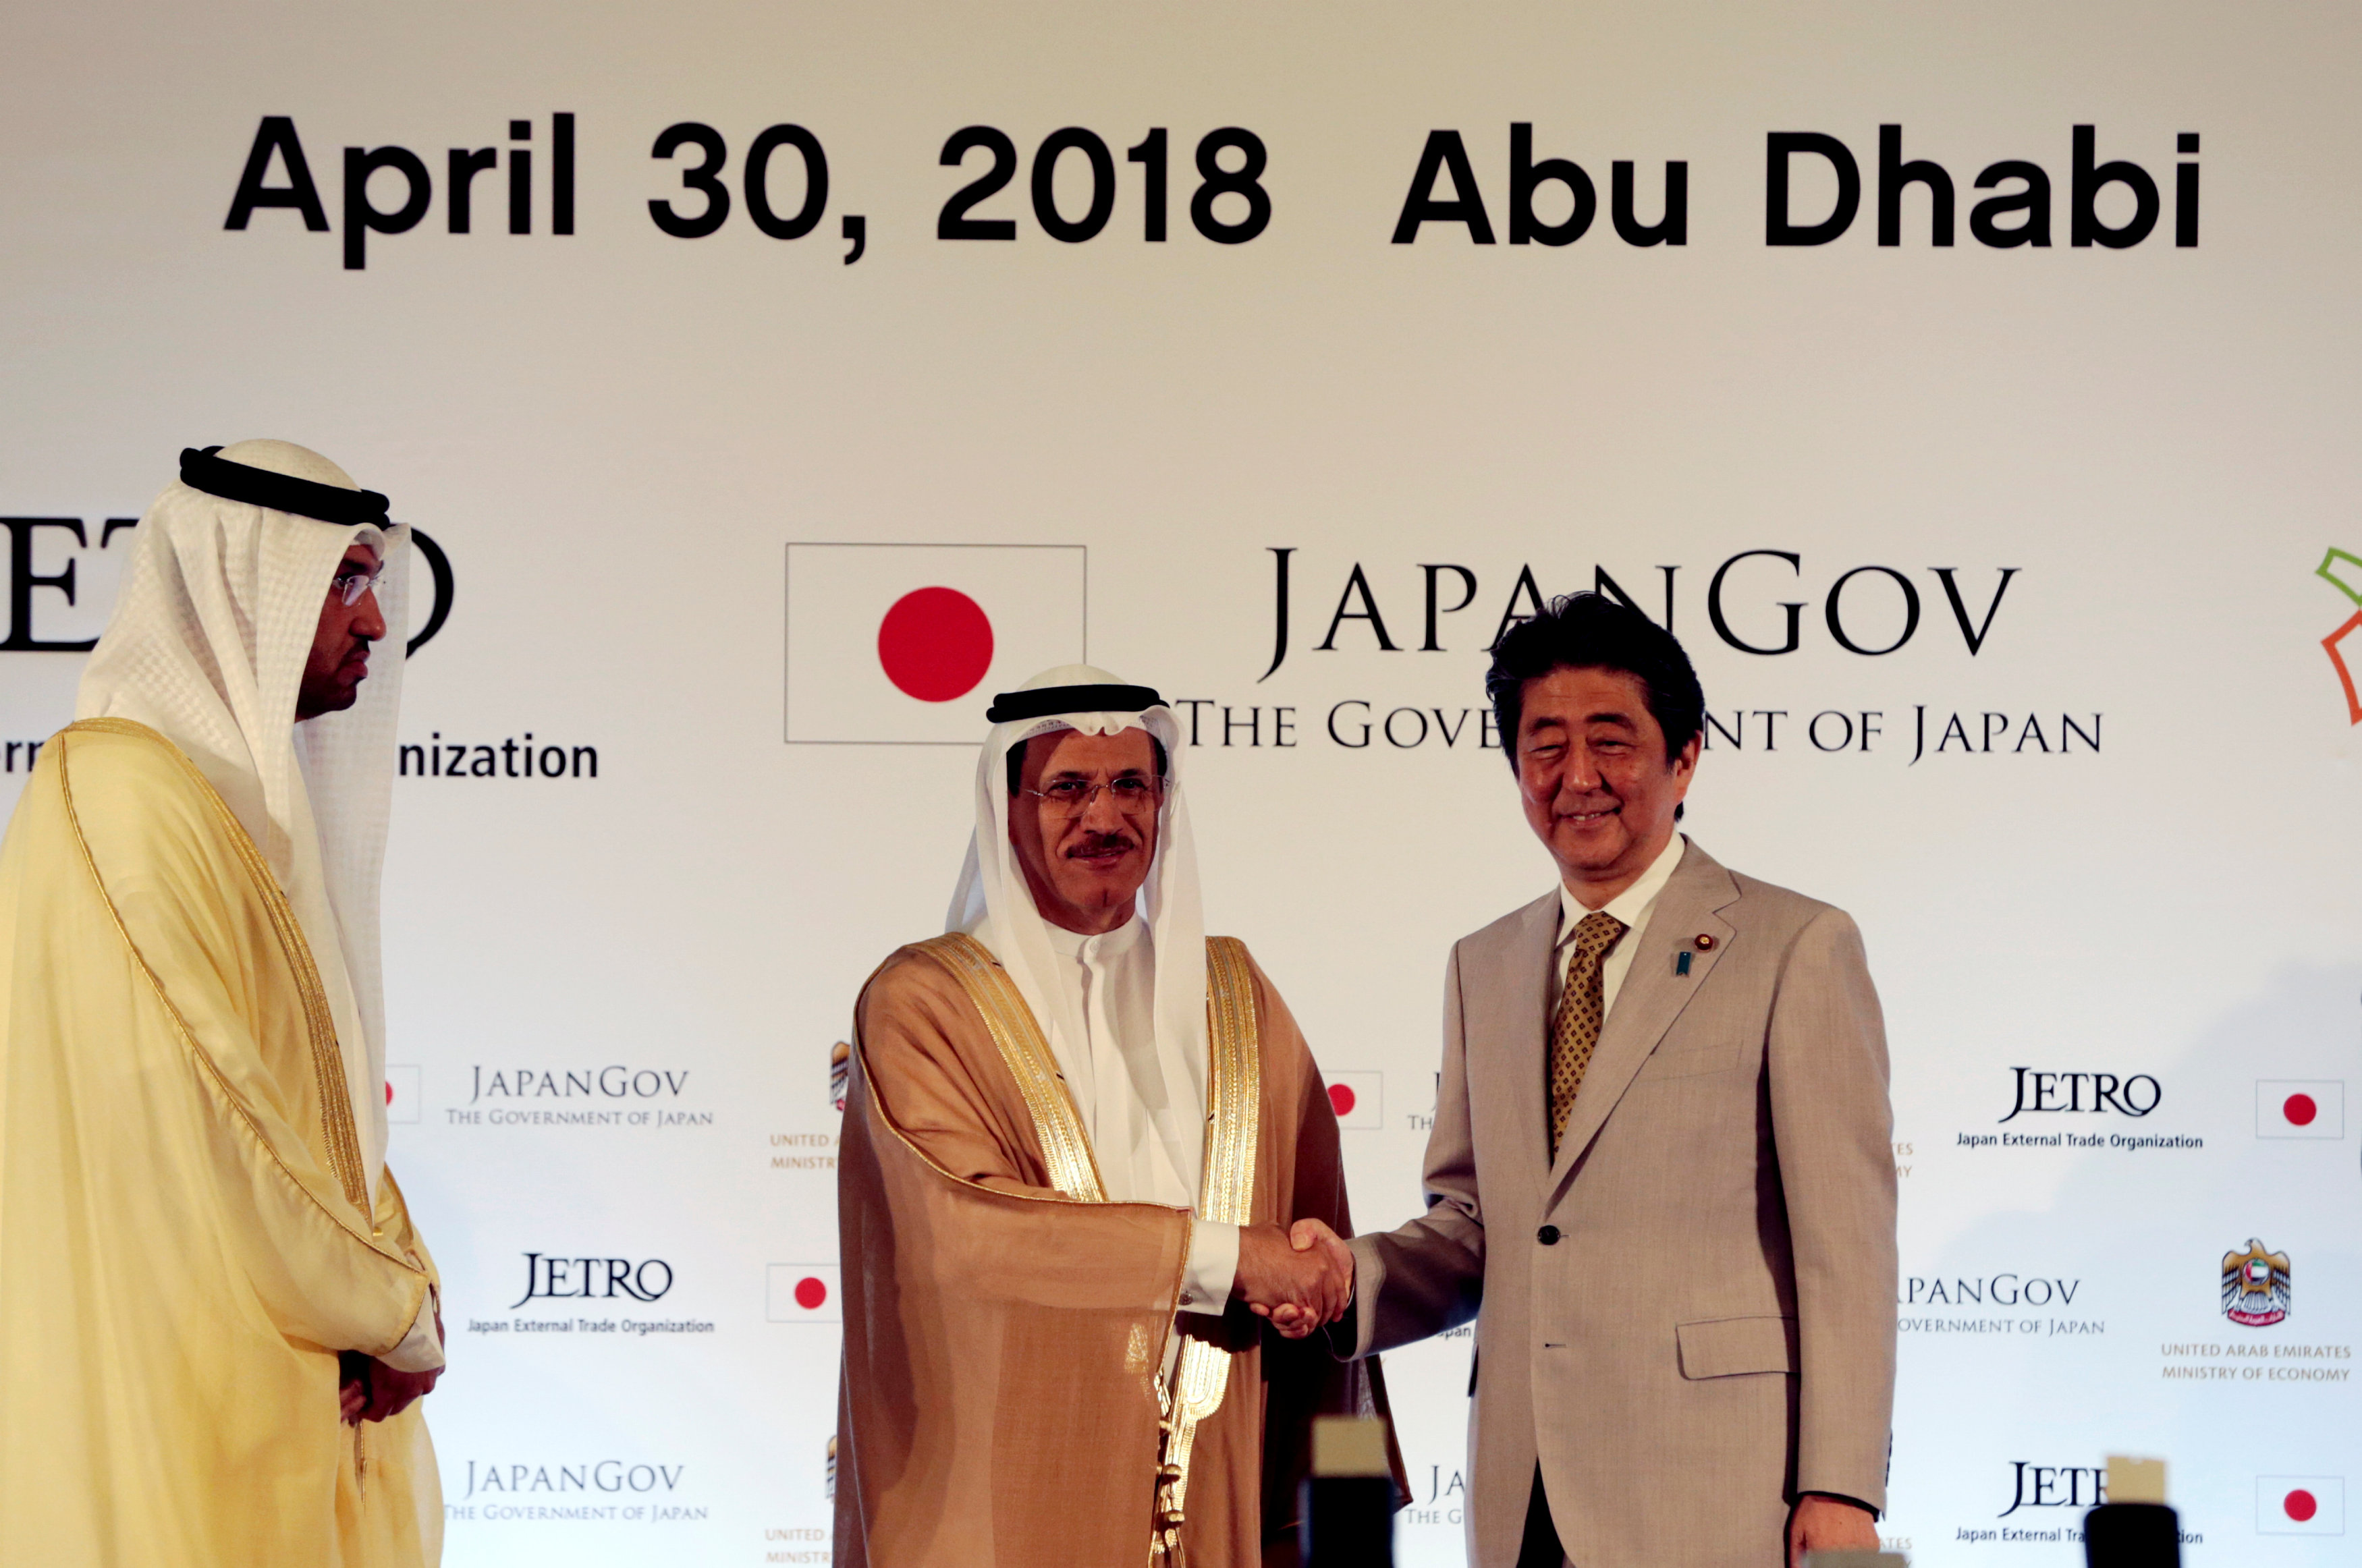 UAE, Japan to sign investment protection treaty